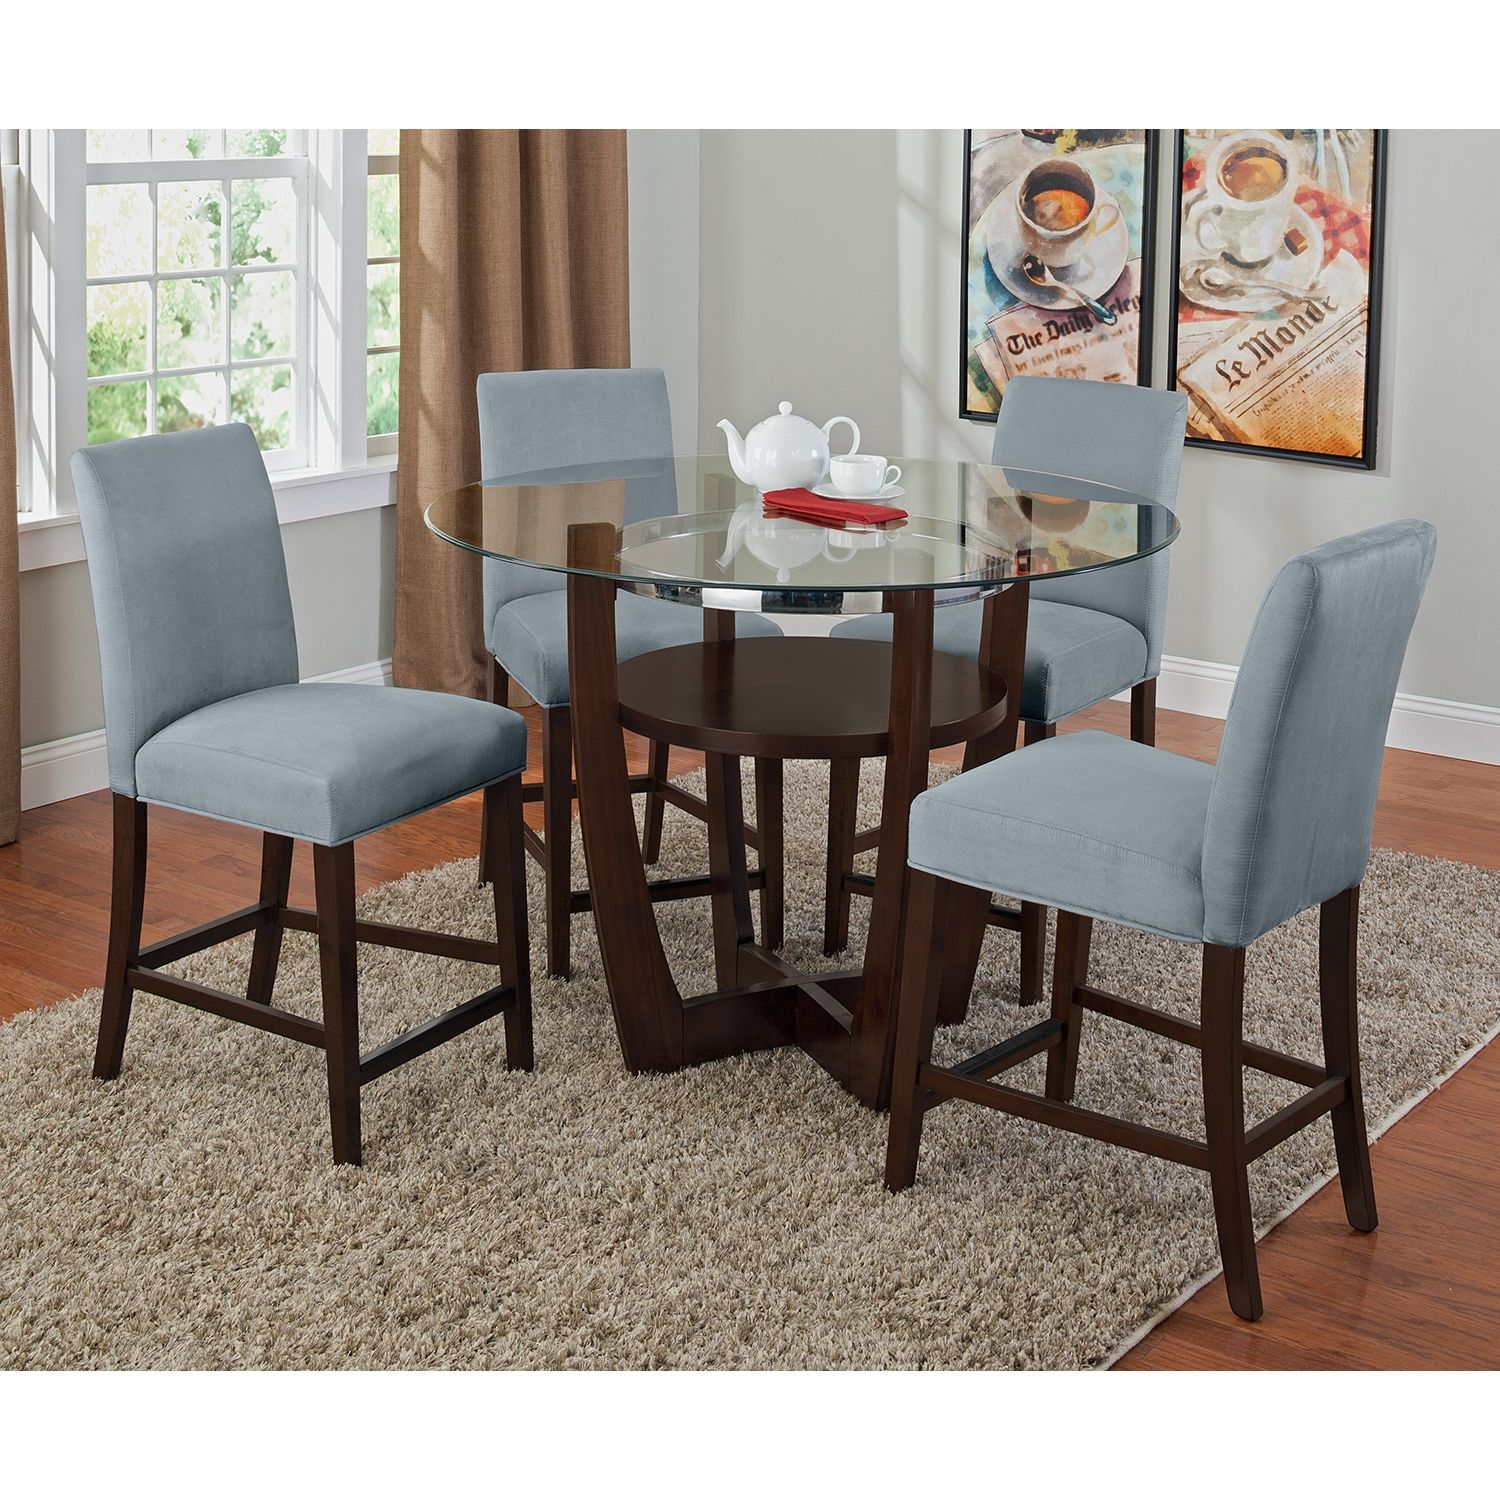 Marvelous Glass Round Dining Table With Shelves And Grey Vinyl Upholstered  Counter Height Stools Dining Set